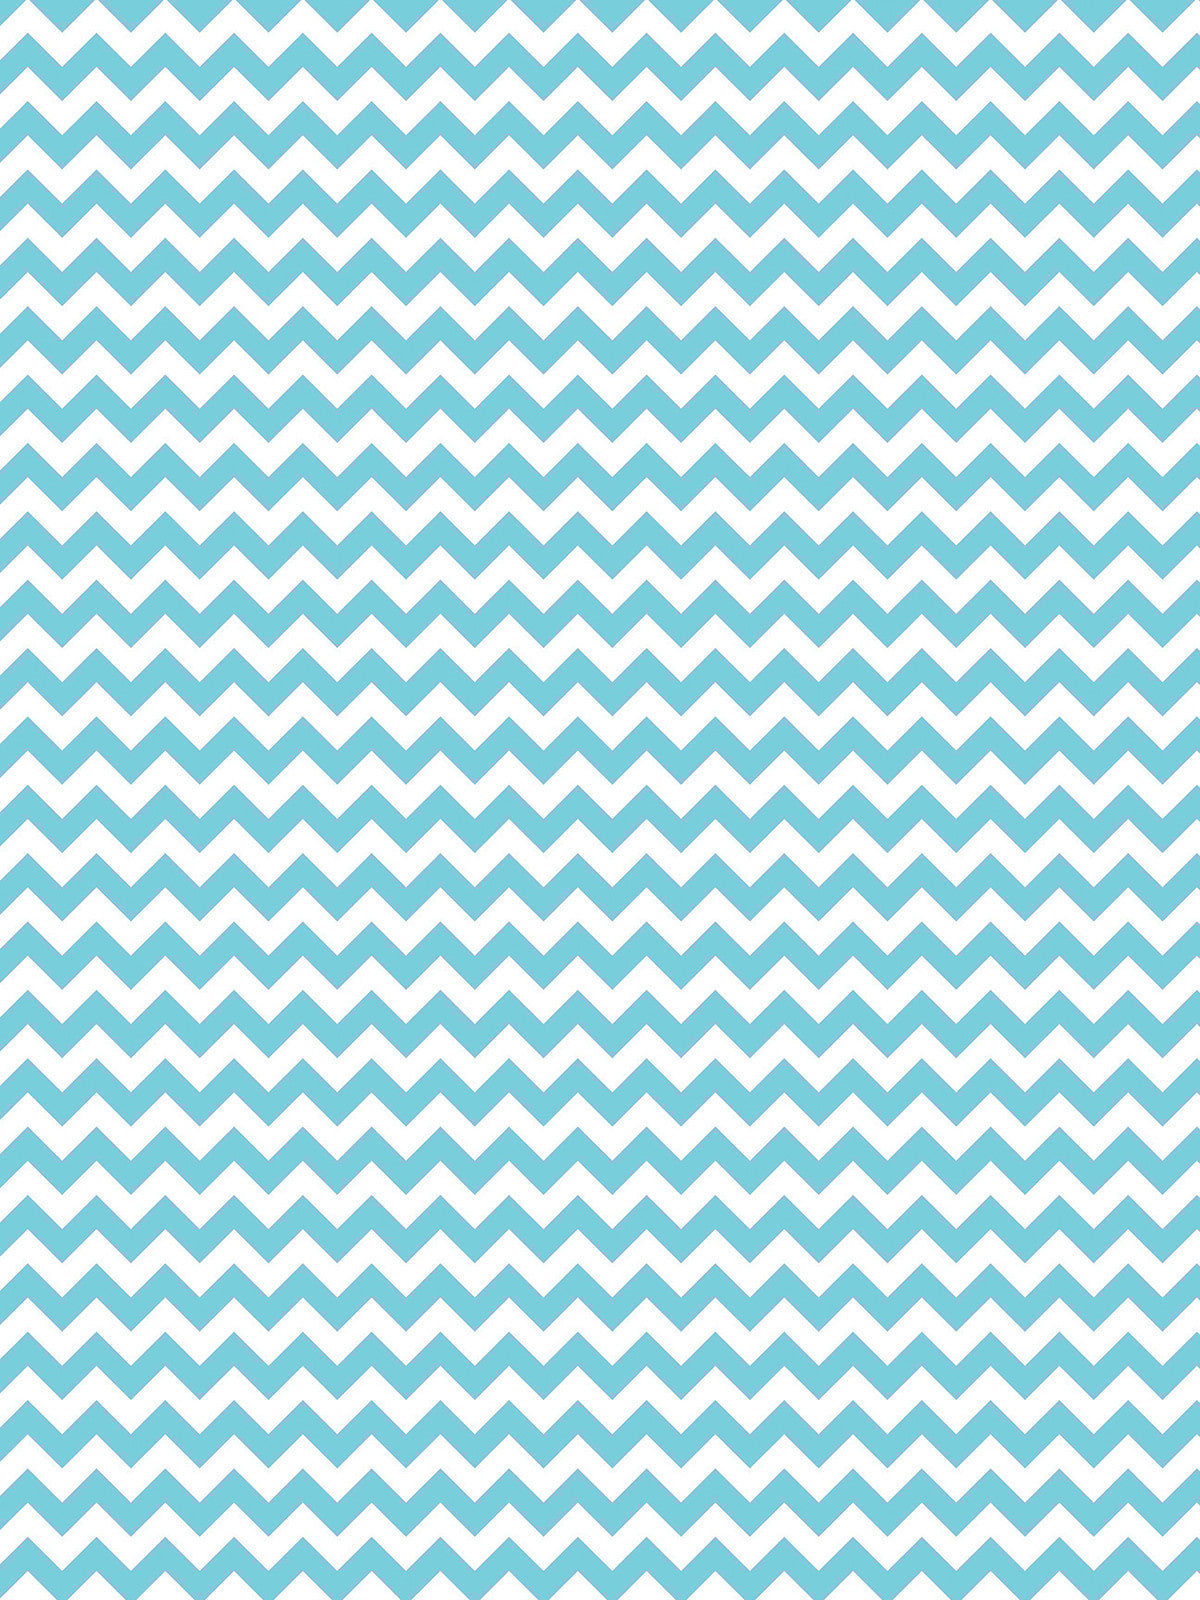 Chevron Skies Photo Backdrop / 9802 - DropPlace